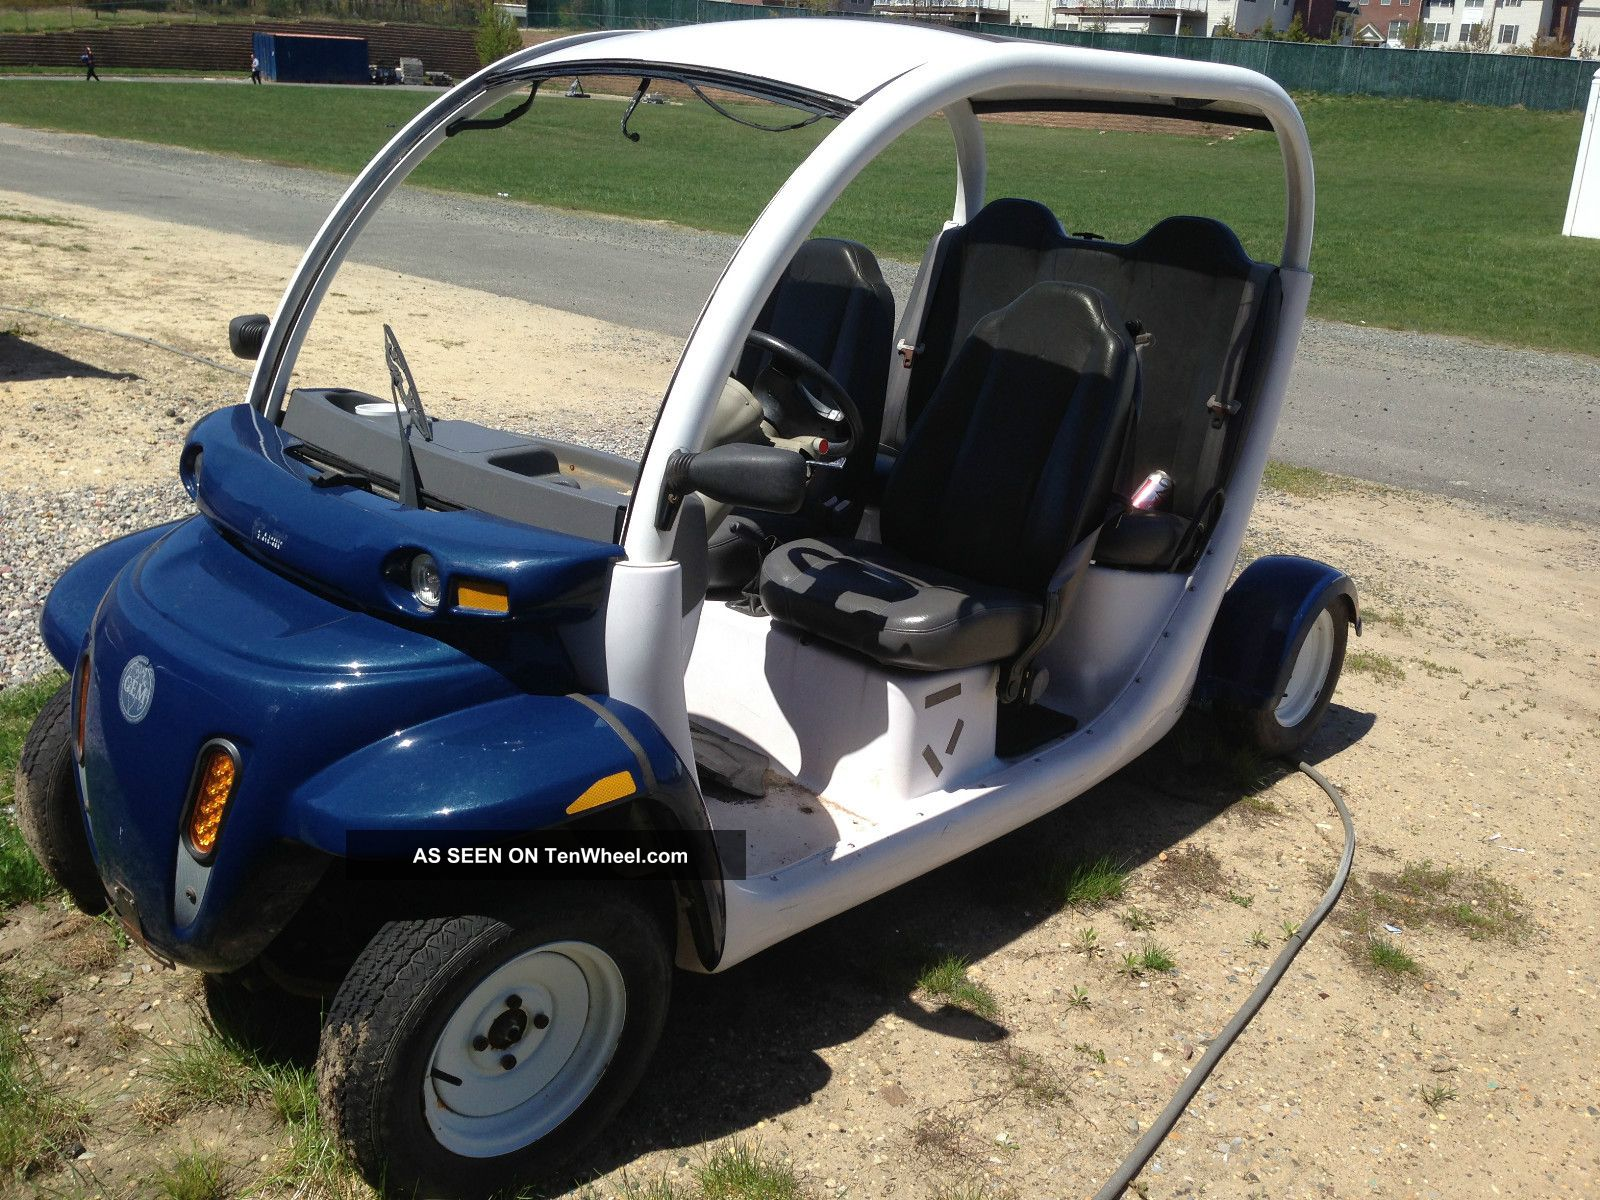 2002 Gem E825 Car Lsv Electric Vehicle Golf Cart 2001 Wiring Diagram Other Makes Photo 2